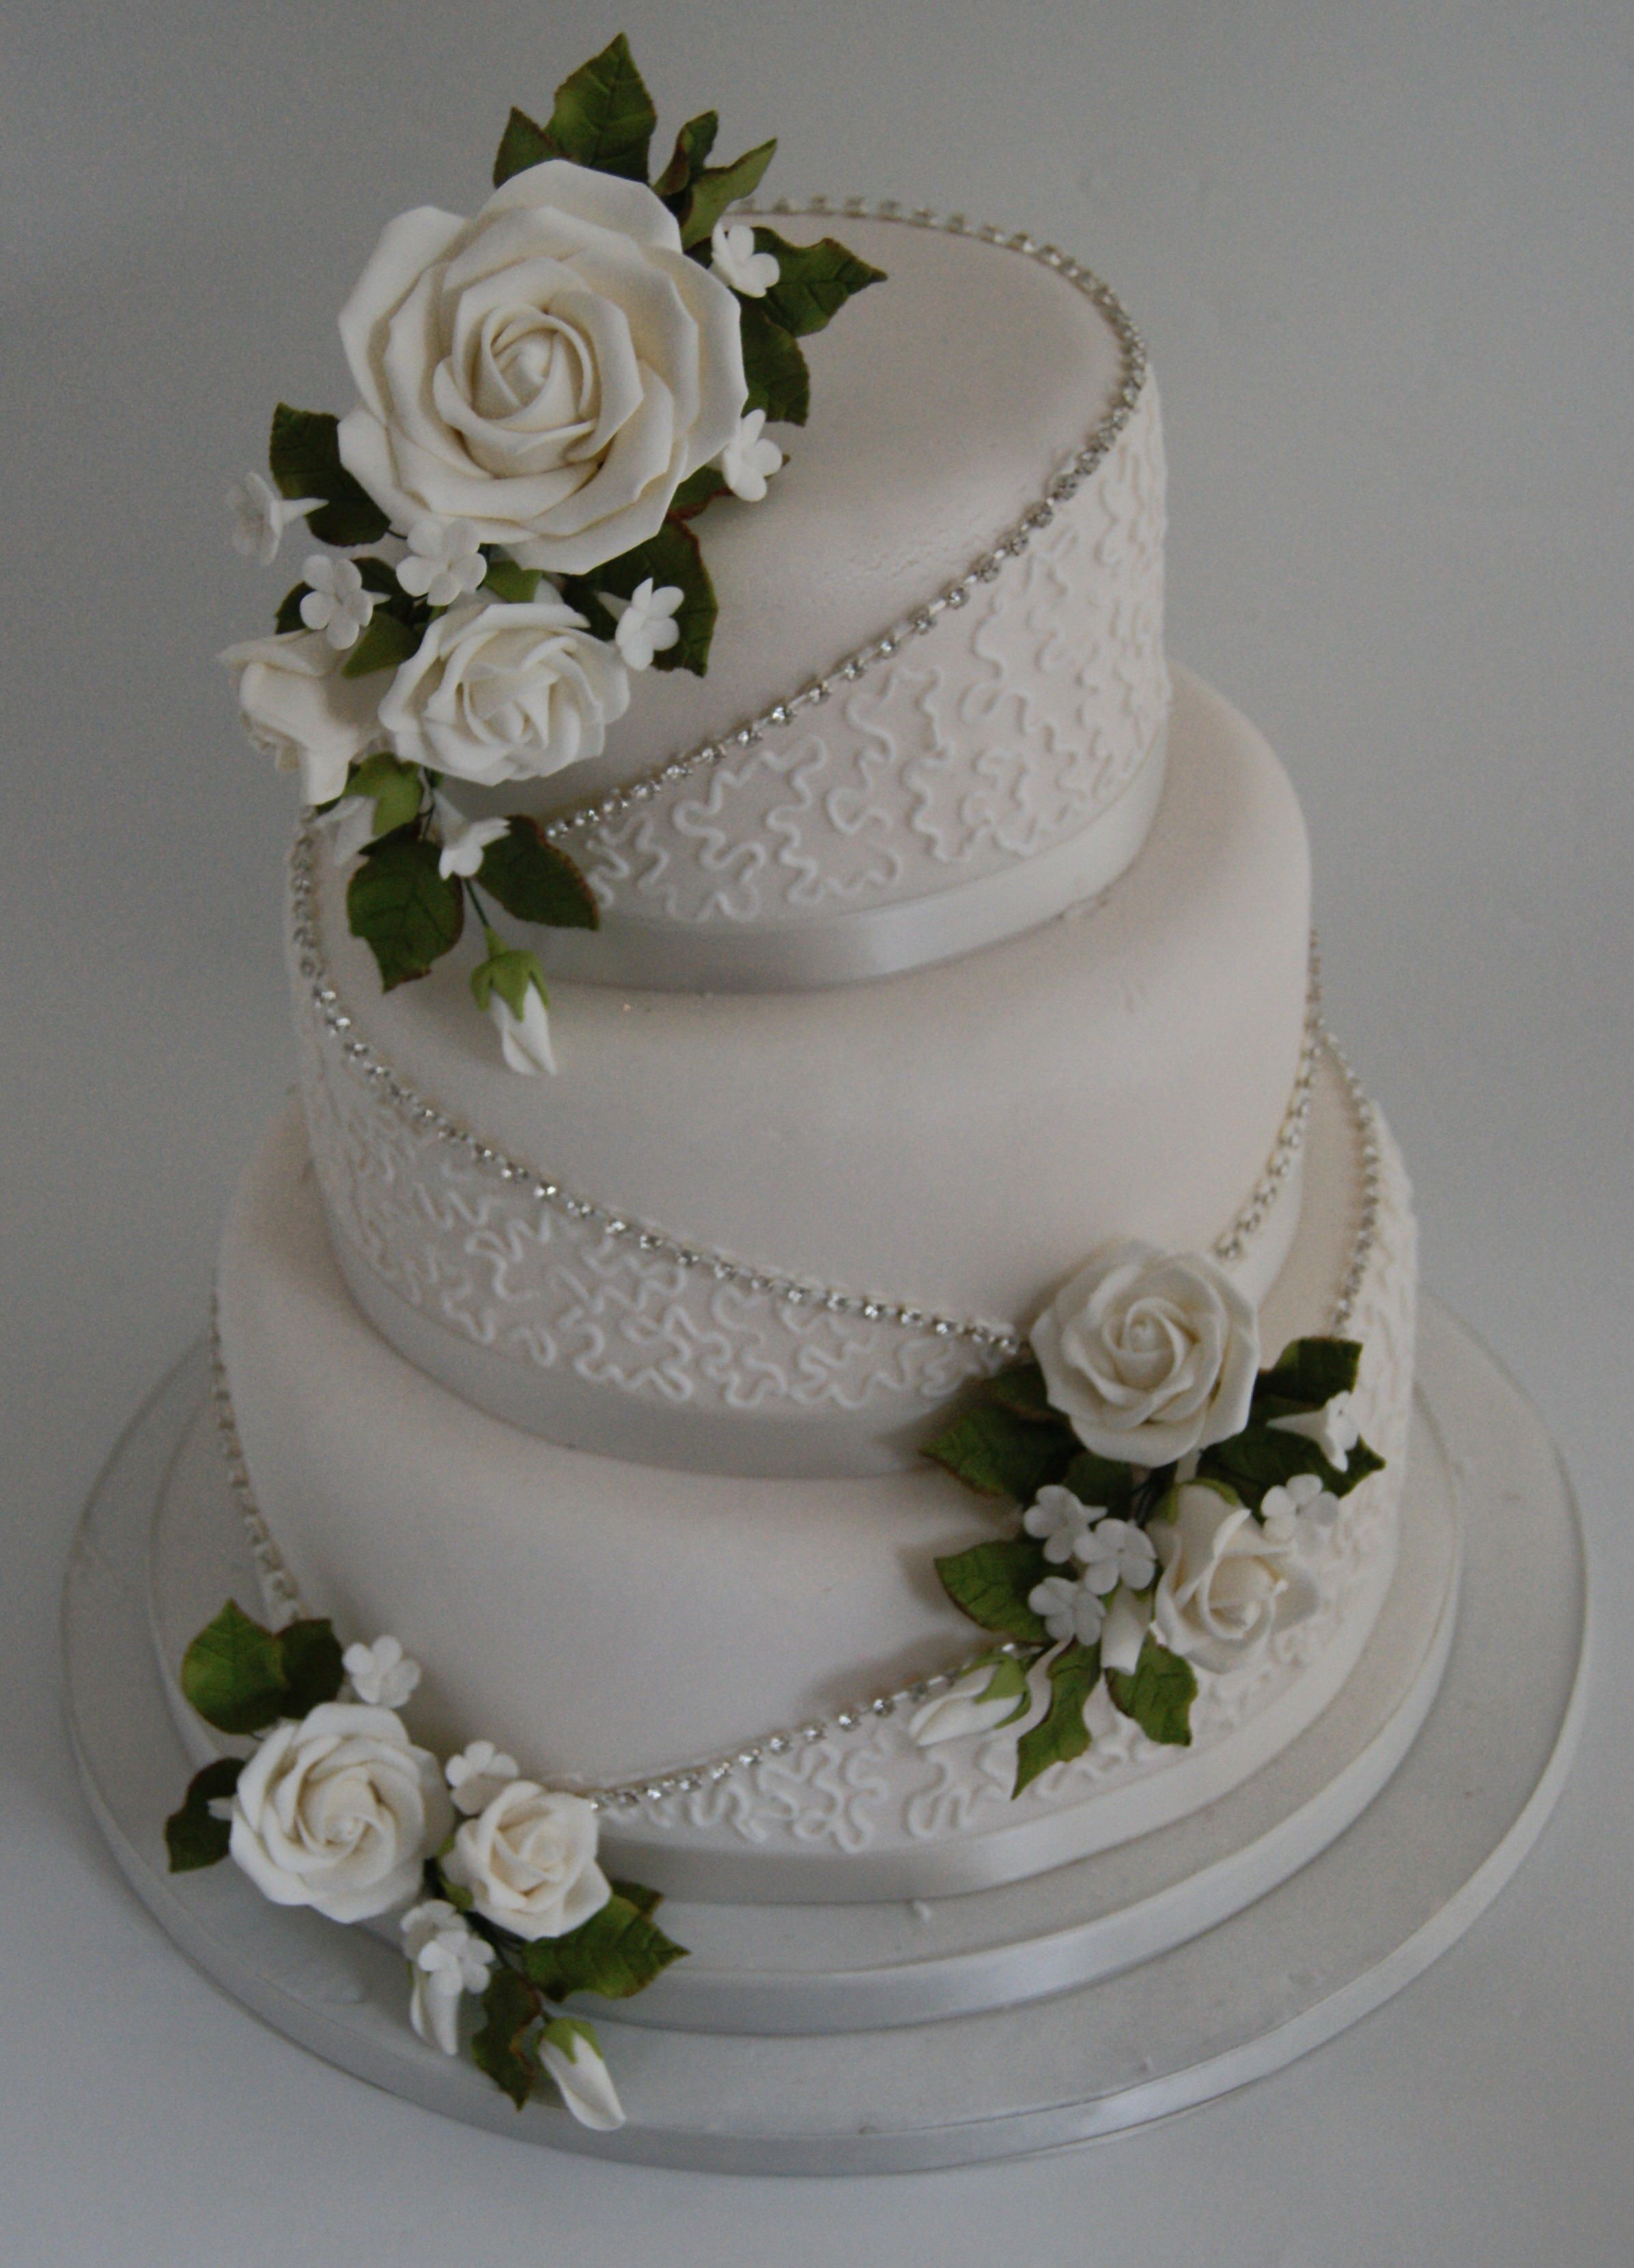 Found My Grandmas 60th Wedding Anniversary Cake But Will Have Red Roses Her Favorite